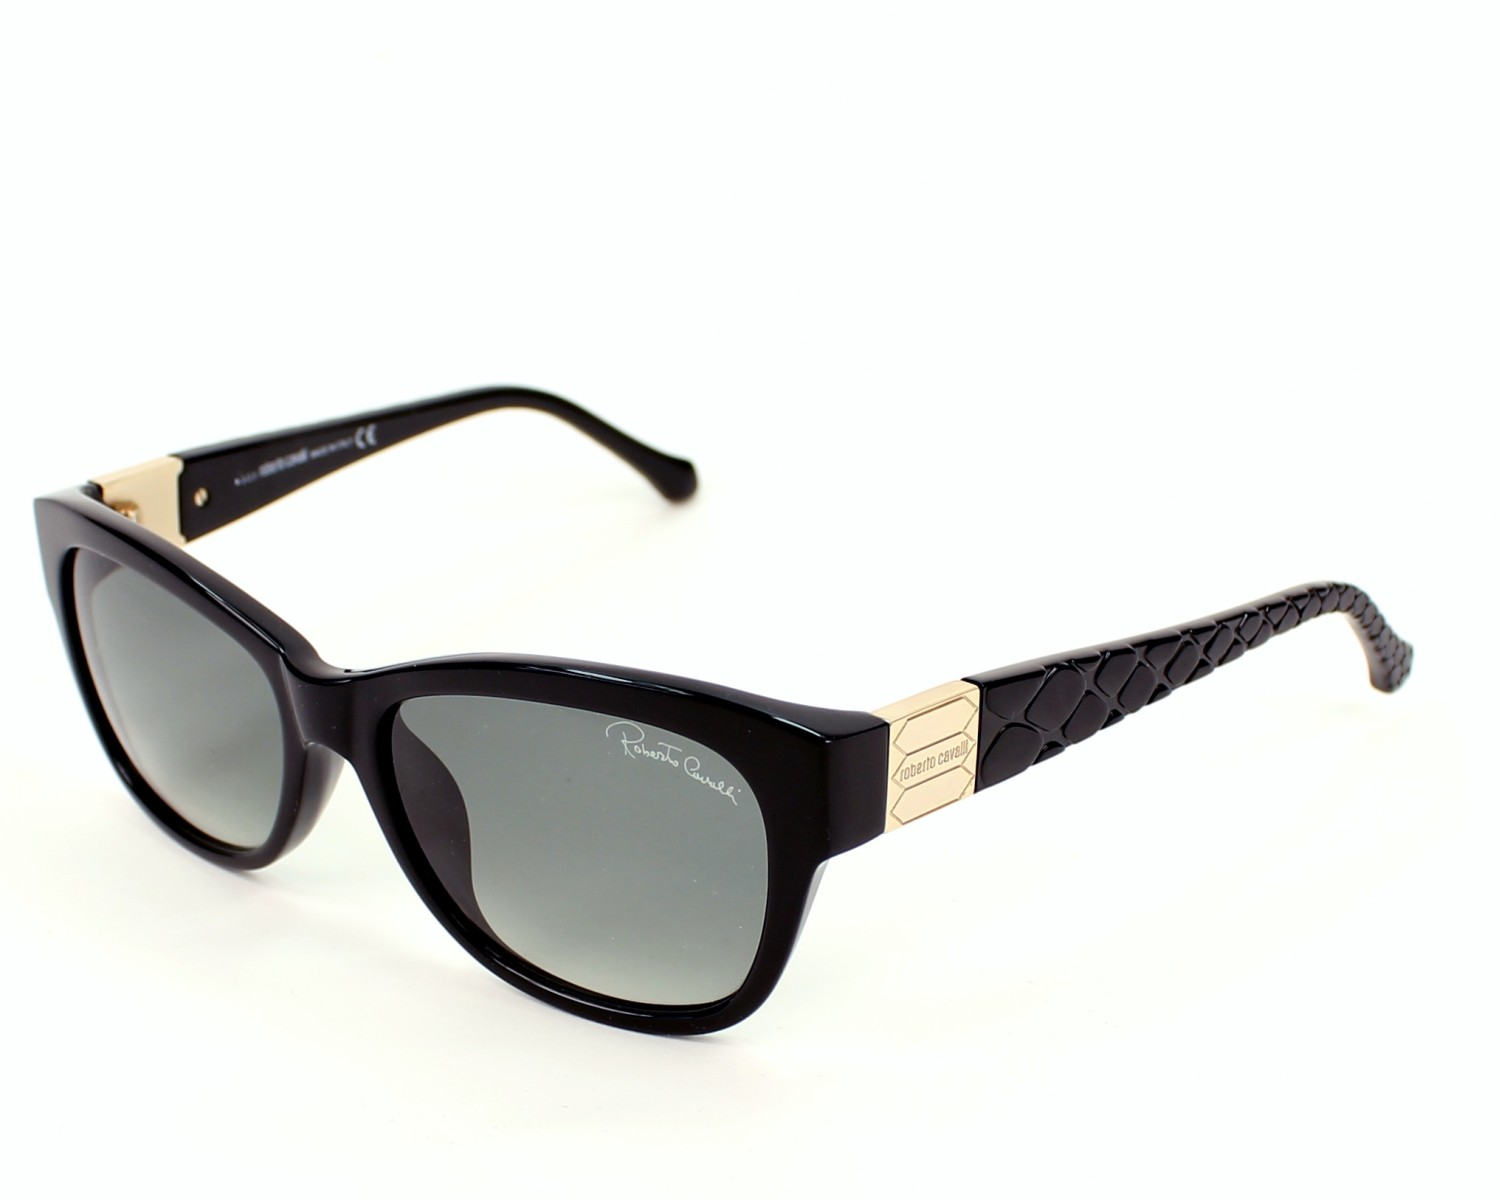 1c9bbadd7a46 Sunglasses Roberto Cavalli RC-785-T 01B 55-16 Black Gold profile view